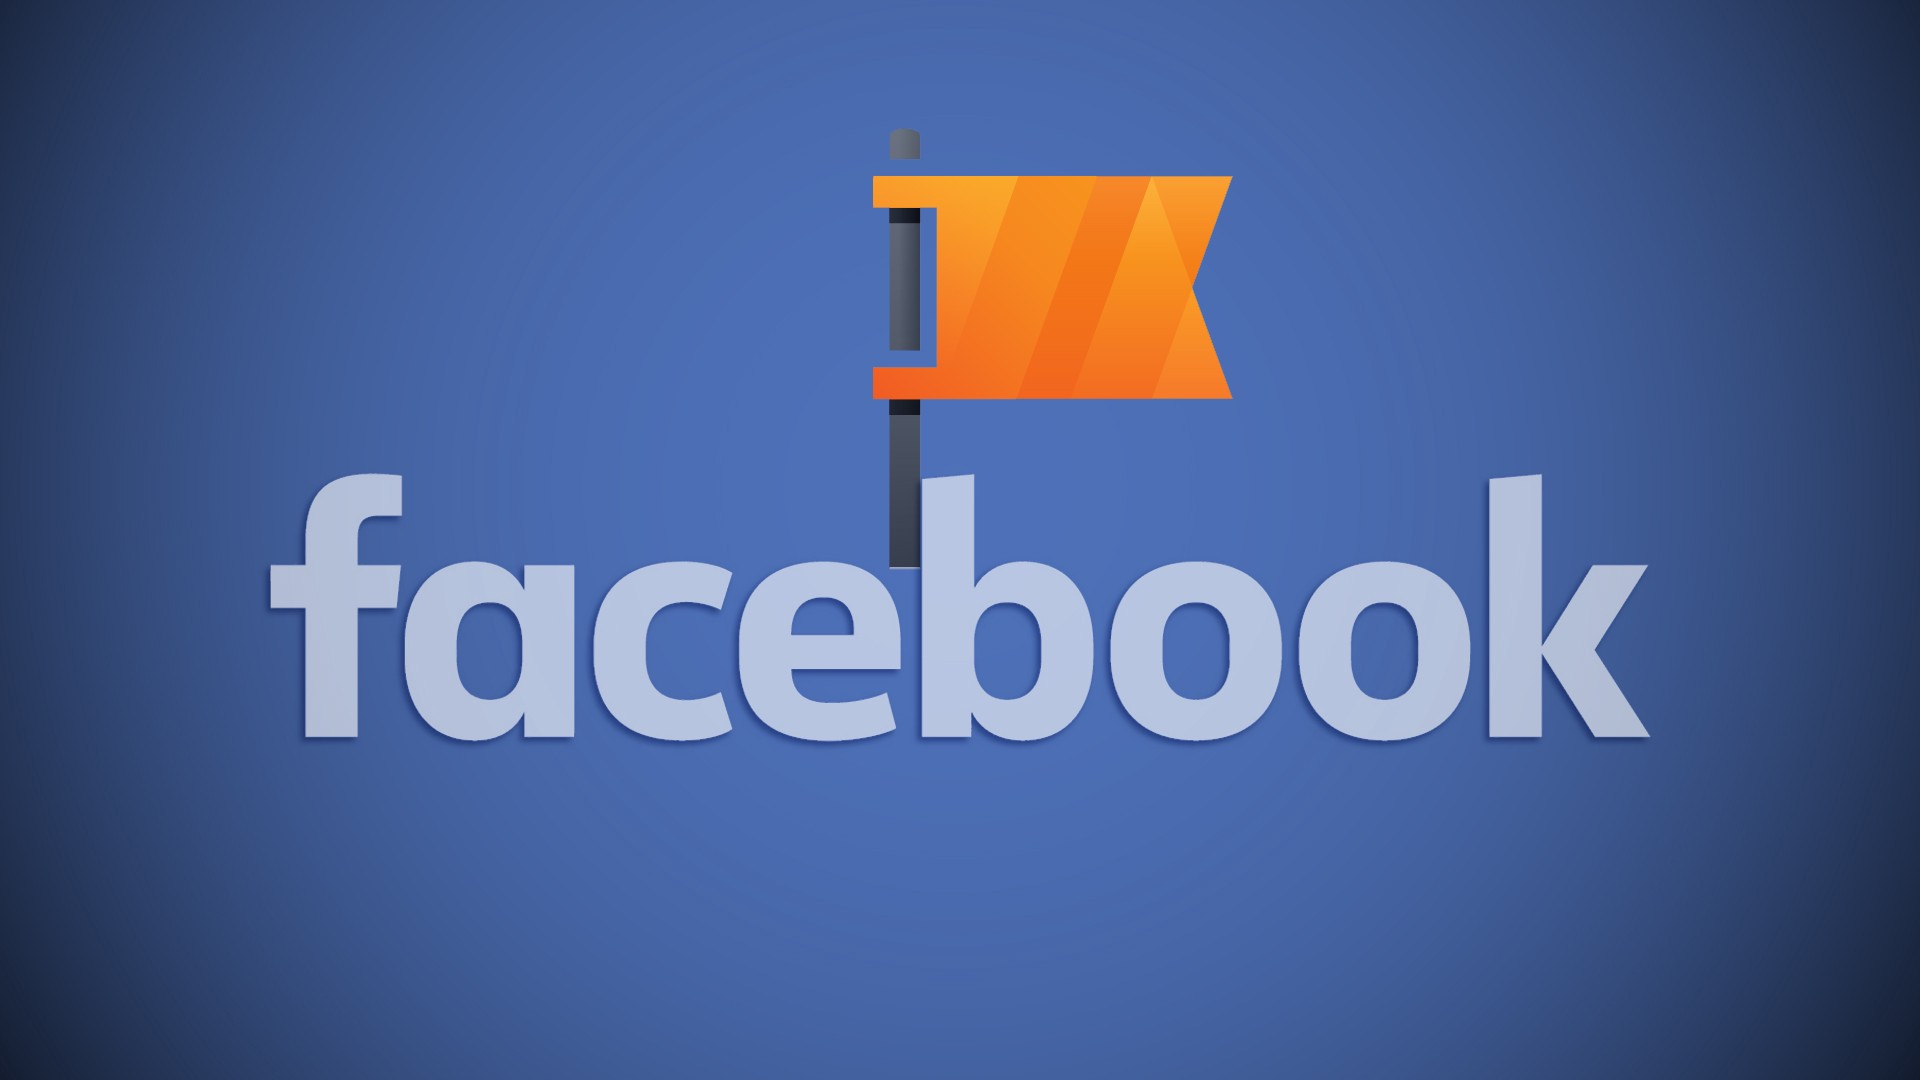 The Facebook page monetization eligibility is an extremely simple process